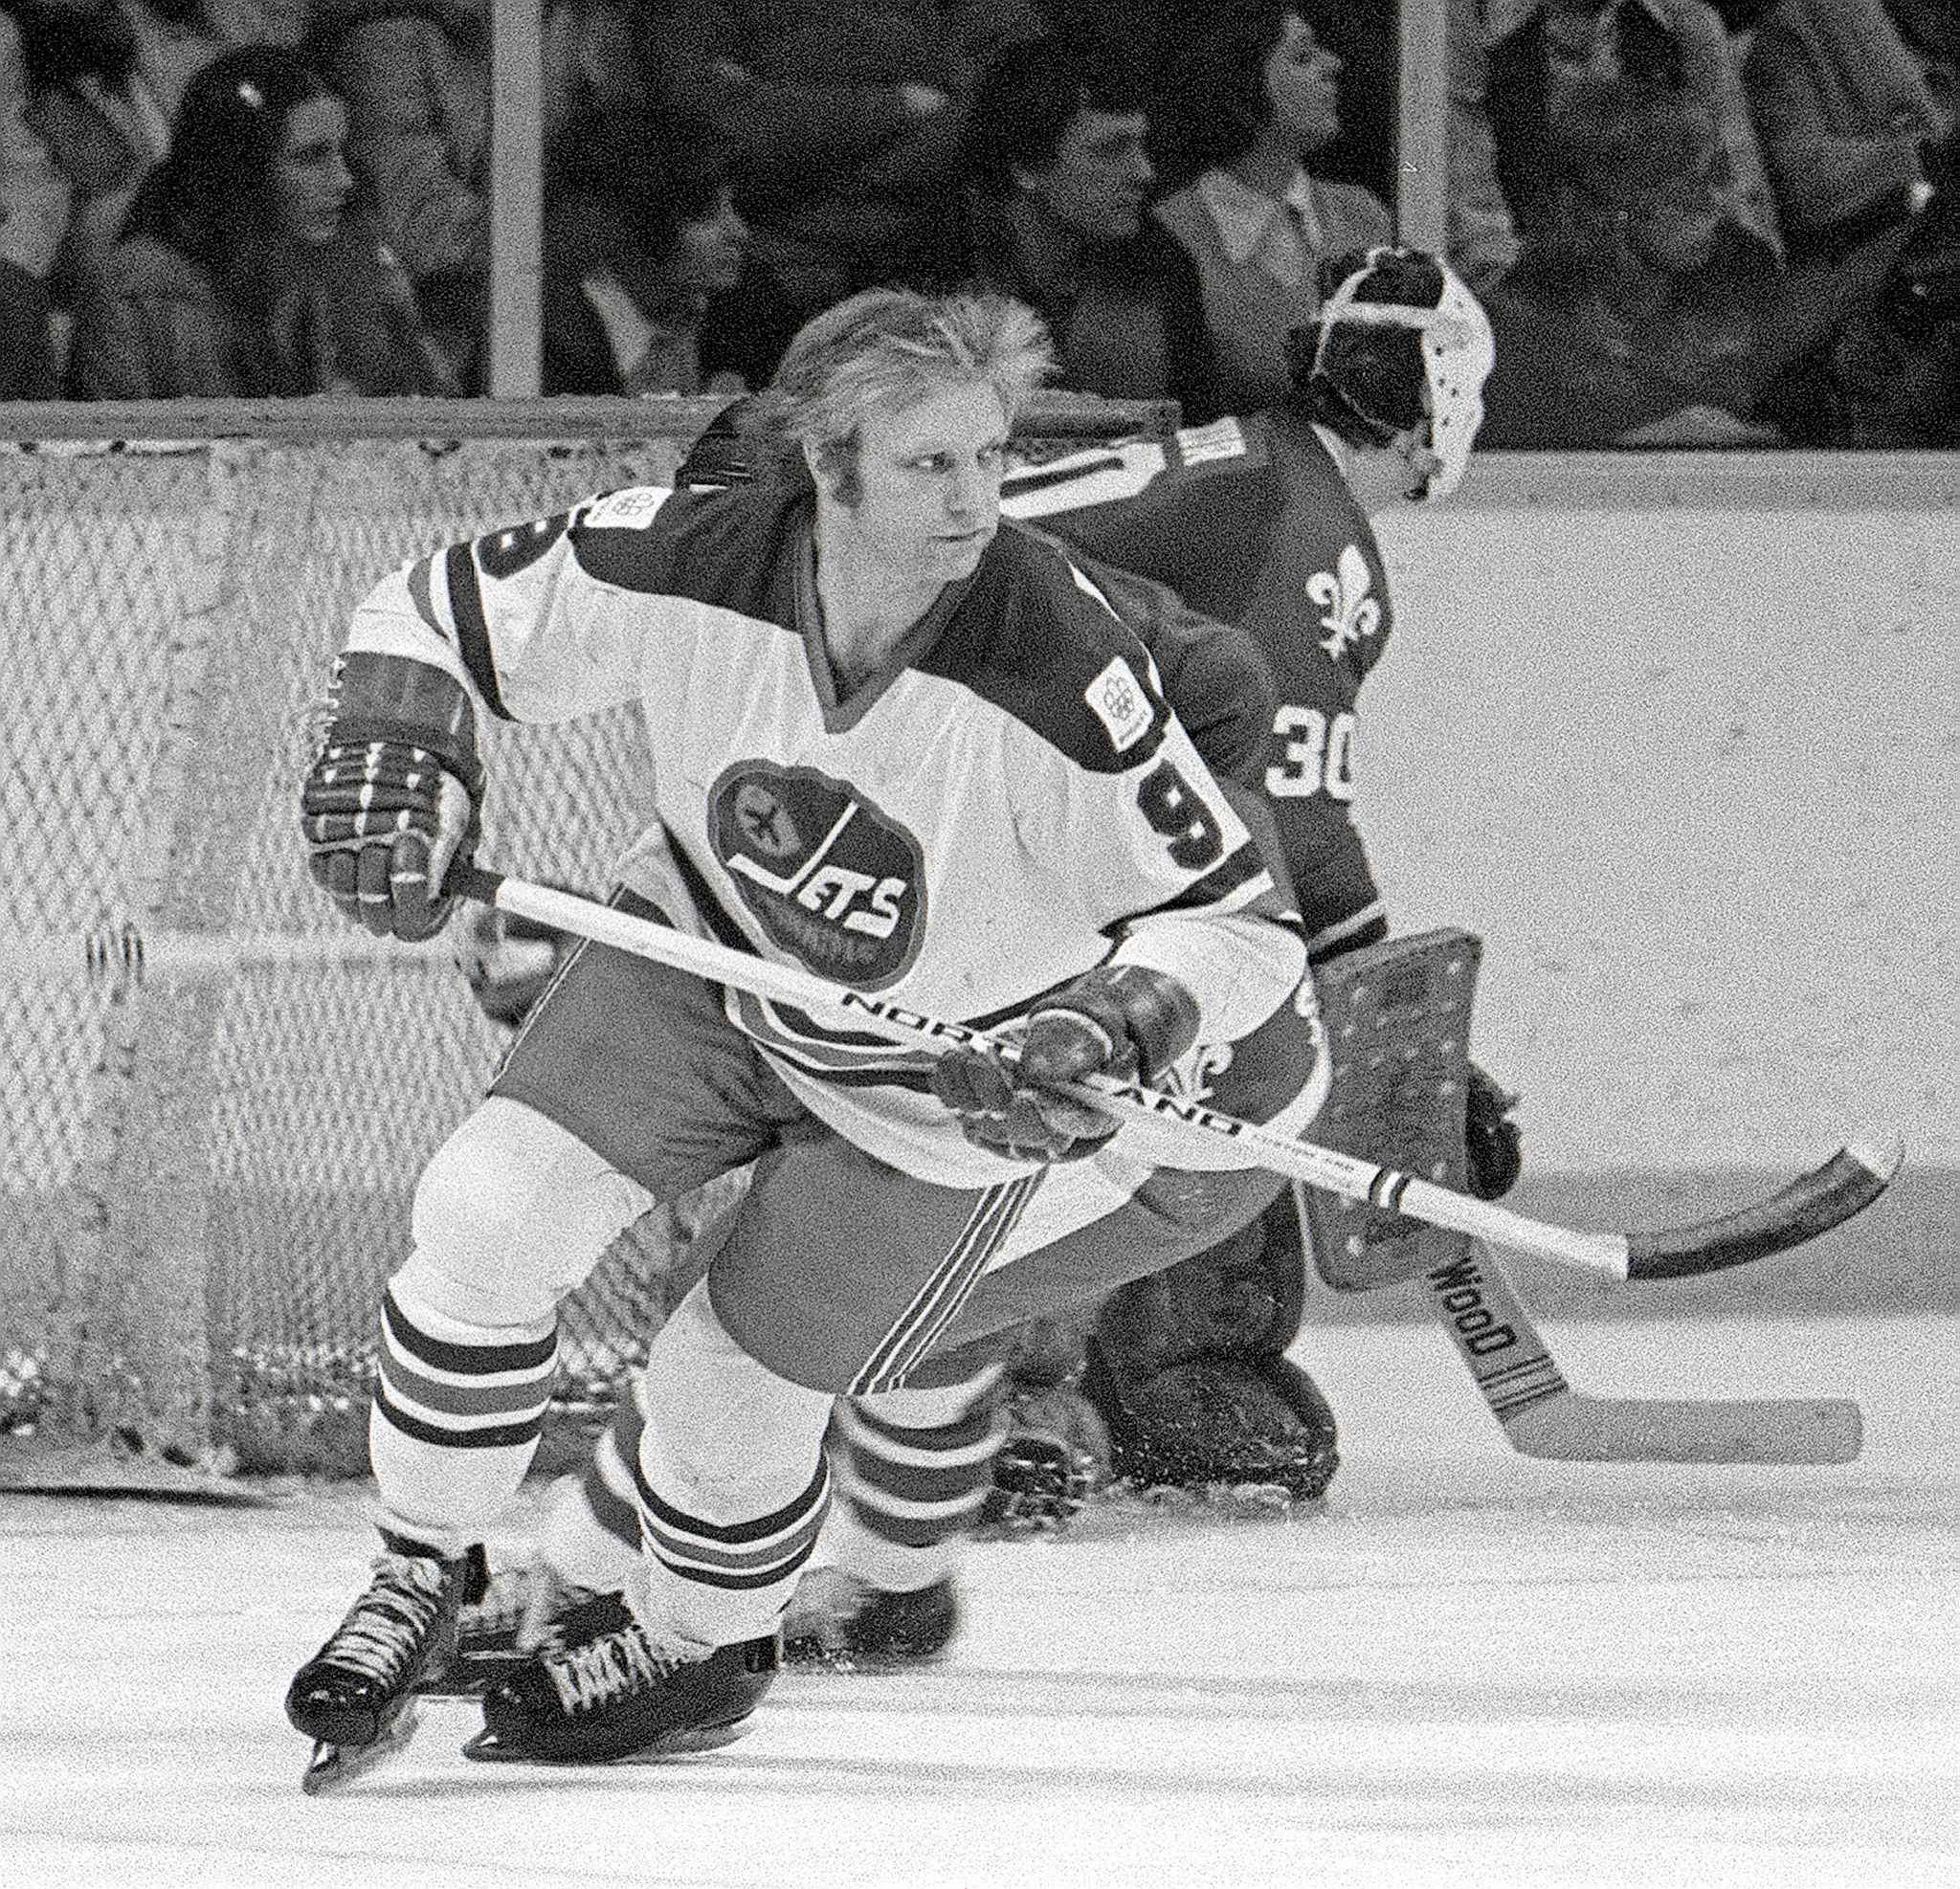 March 3, 1976. Bobby Hull in a game against the Quebec Nordiques. Injuries would limit Hull to just 34 regular-season games that year.